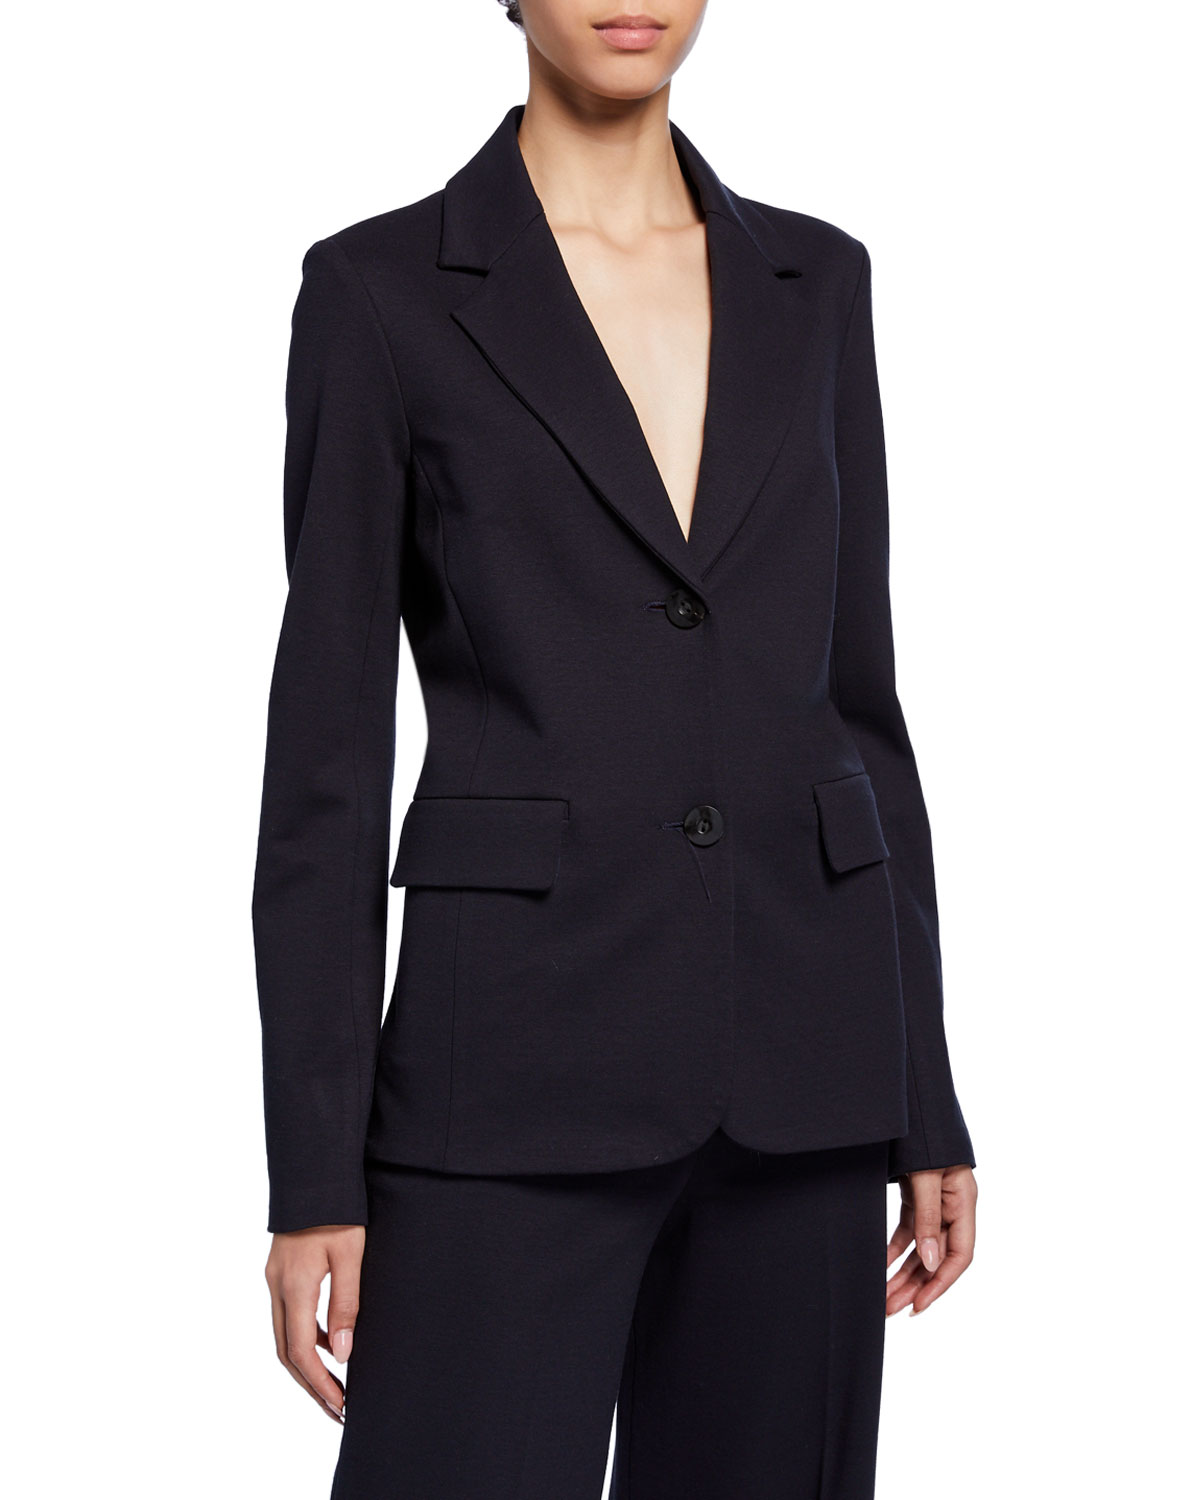 Rosetta Getty Jackets FITTED WOOL CREPE JACKET